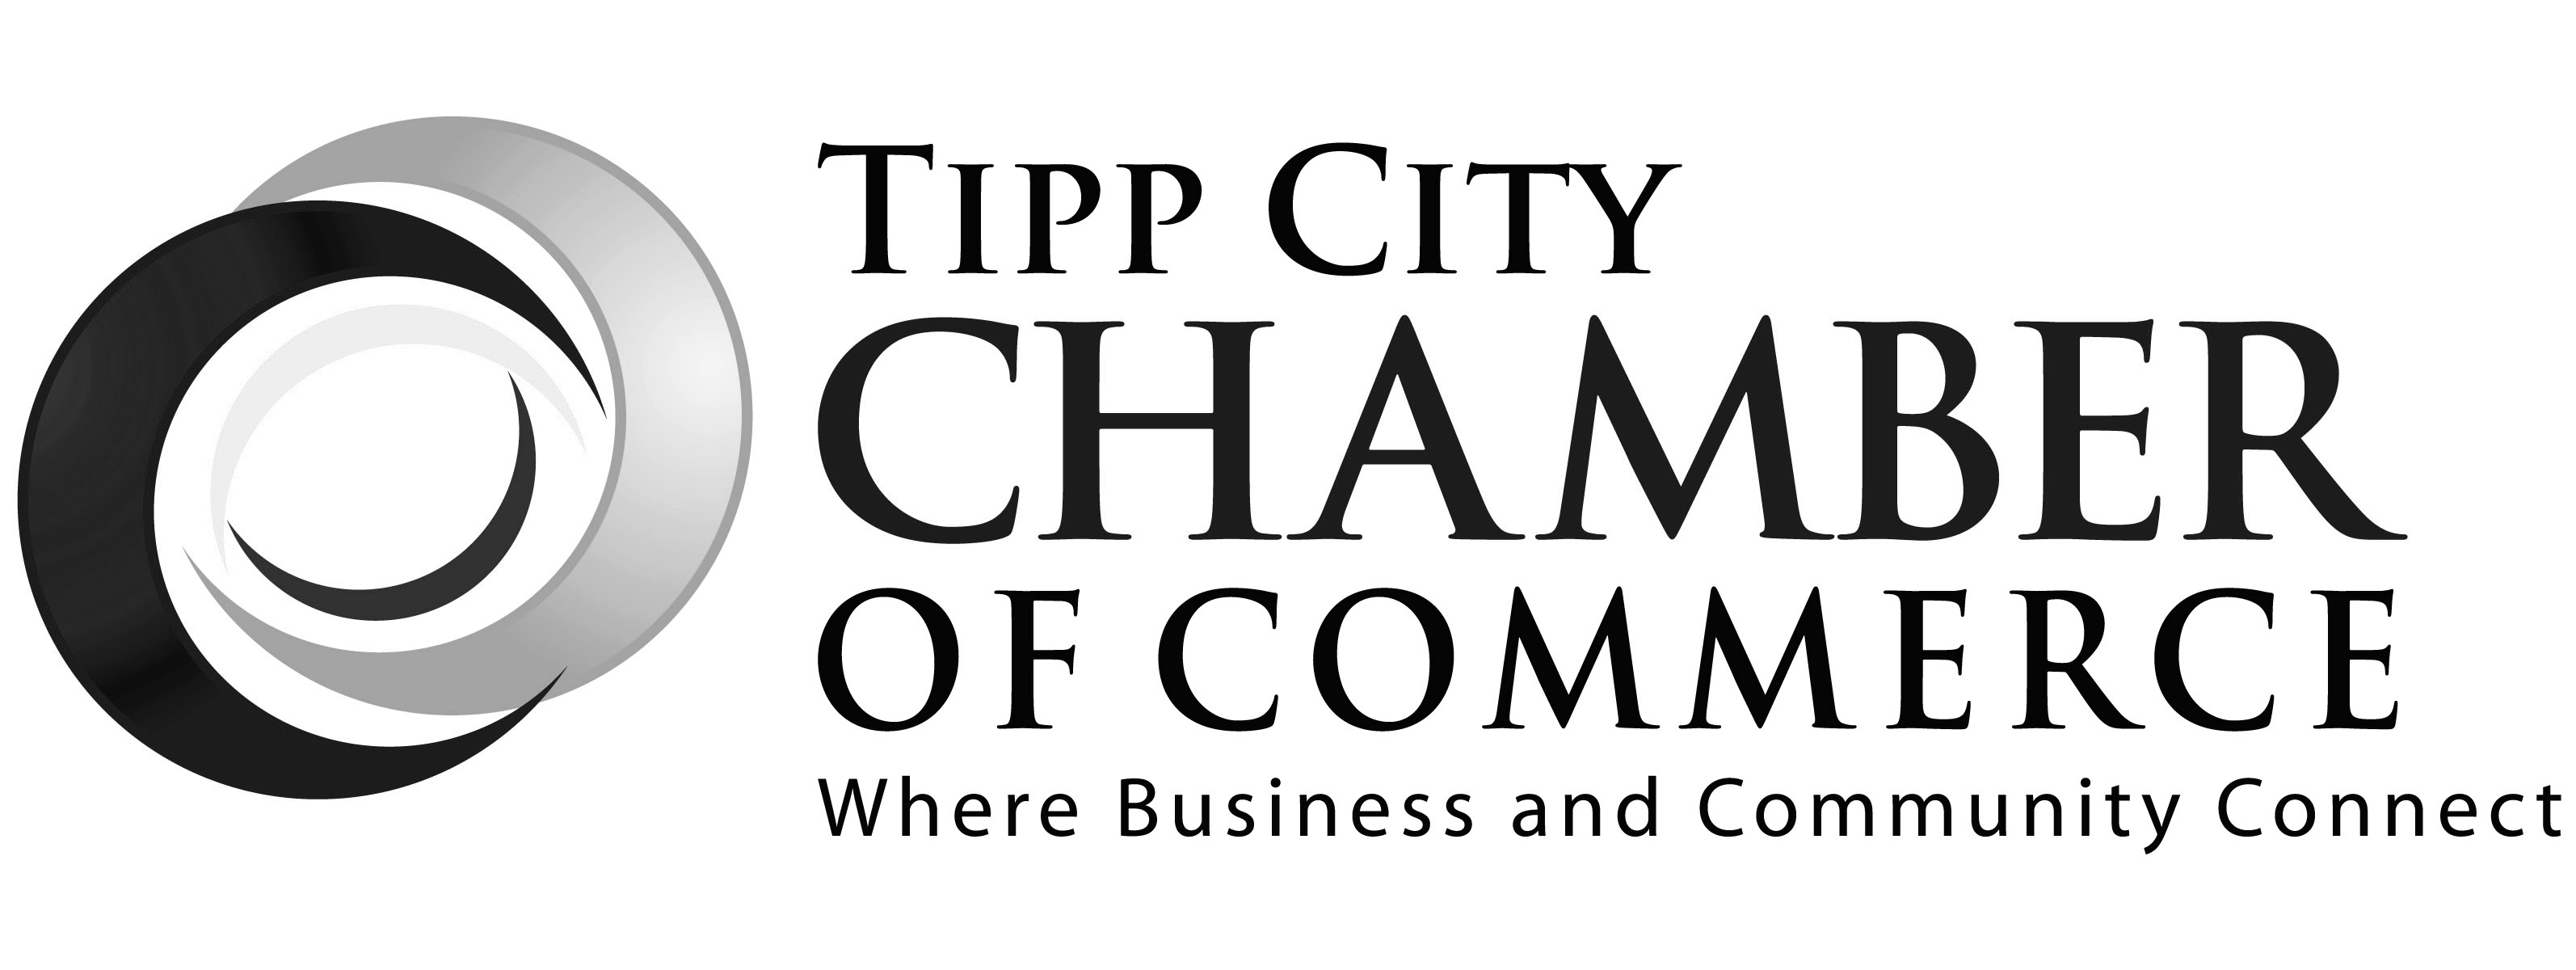 Tipp City, Ohio eGift Card Digital Gift